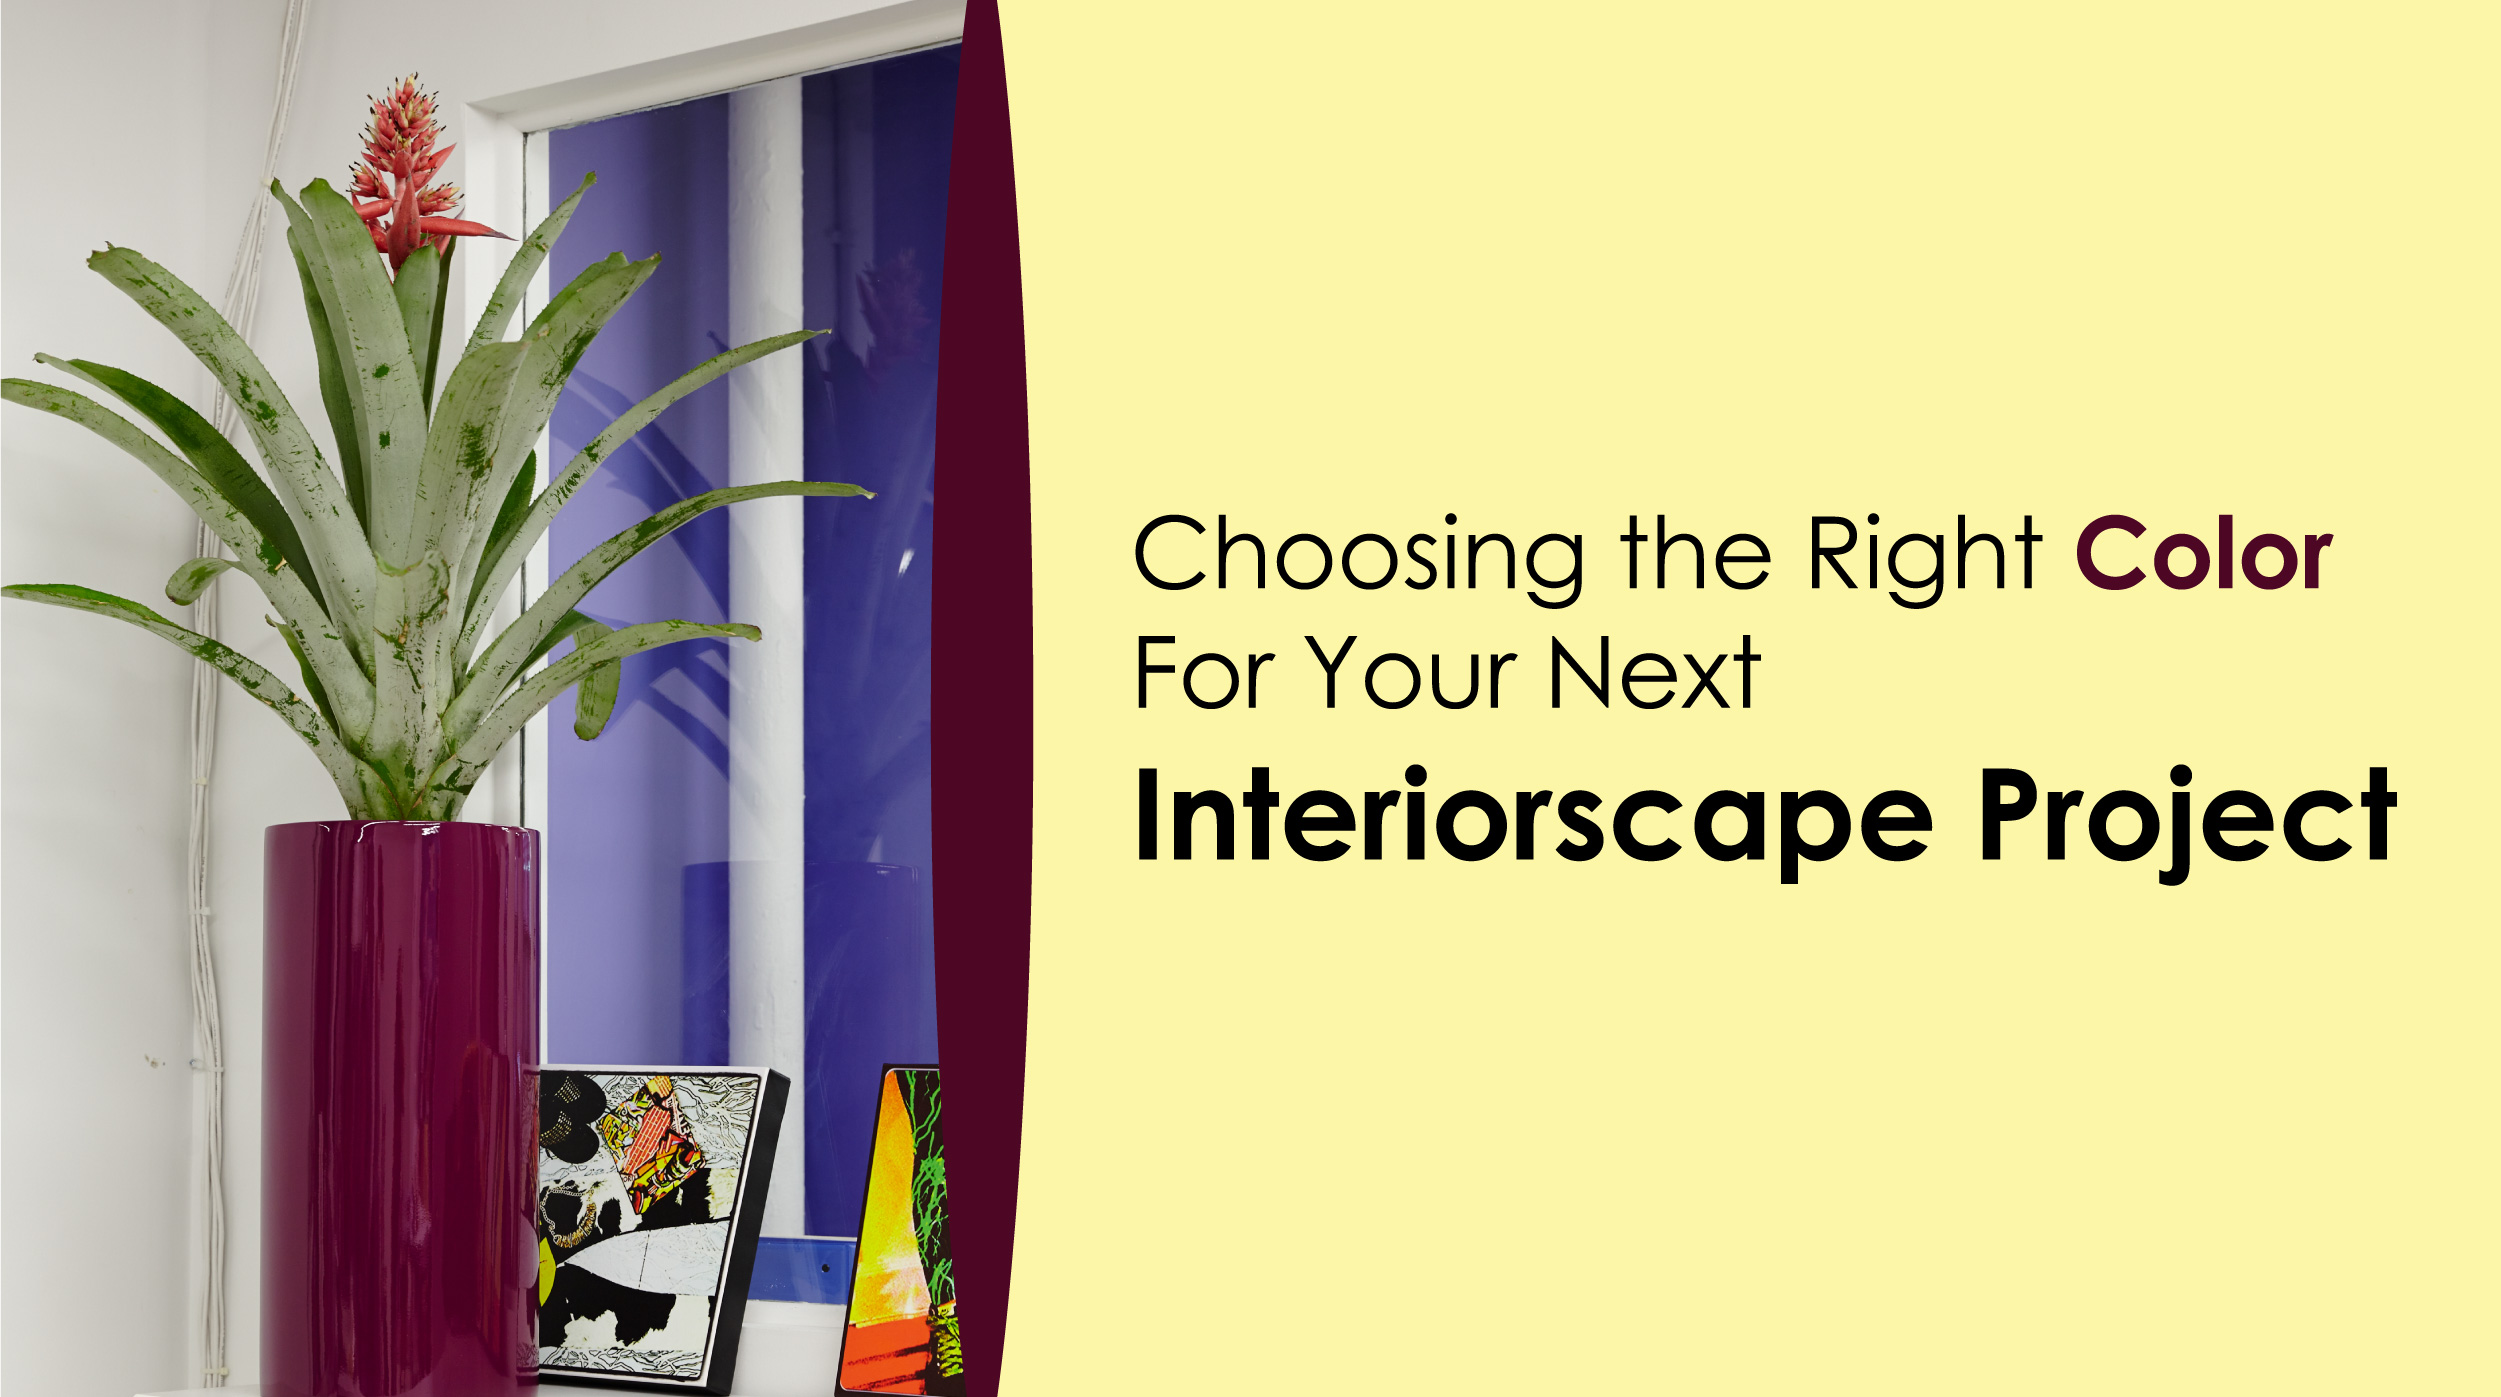 Choosing the Right Color for Your Interiorscape Project